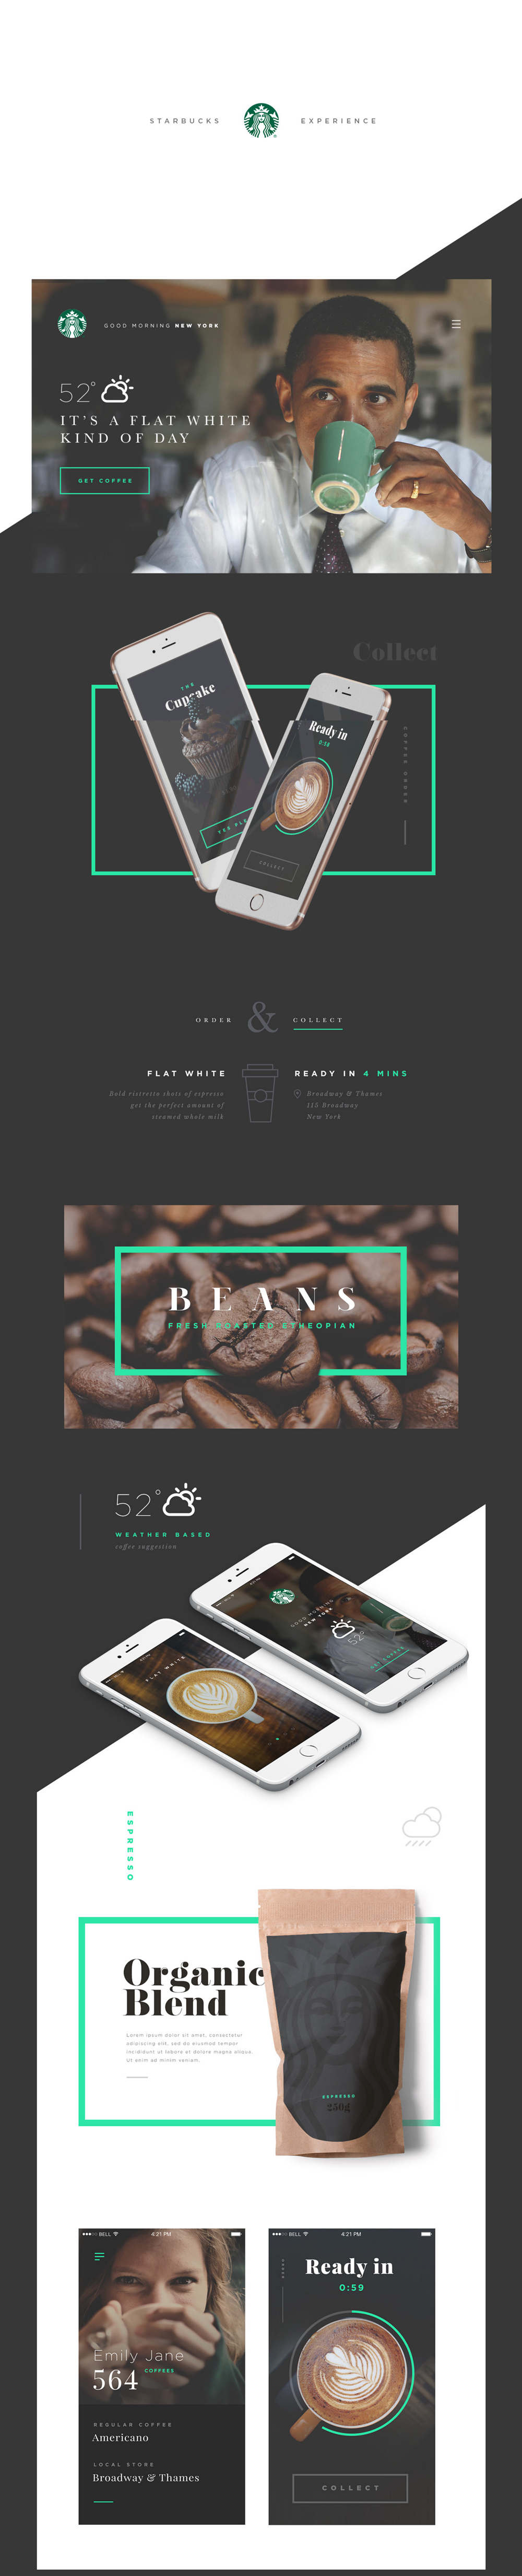 Pin by Chris Mai on UX Web Design Weebly website design